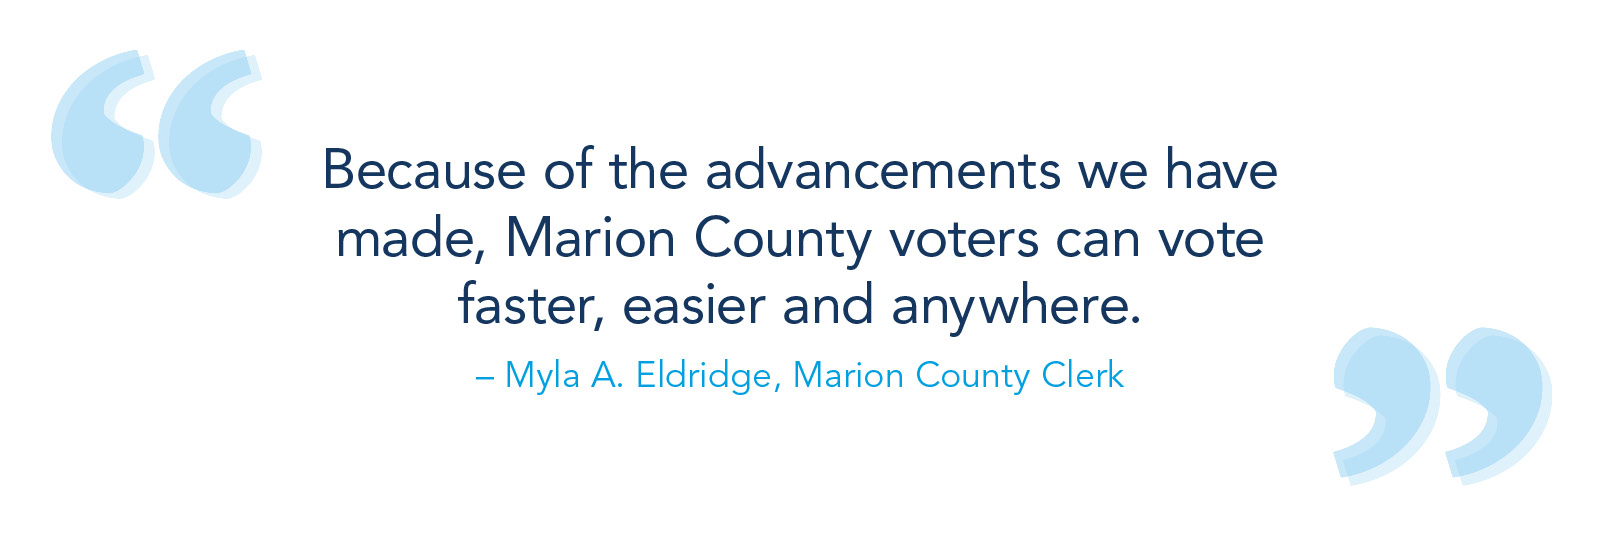 Because of the advancements we have made, Marion County voters can vote faster, easier and anywhere. – Myla A. Eldridge, Marion County clerk